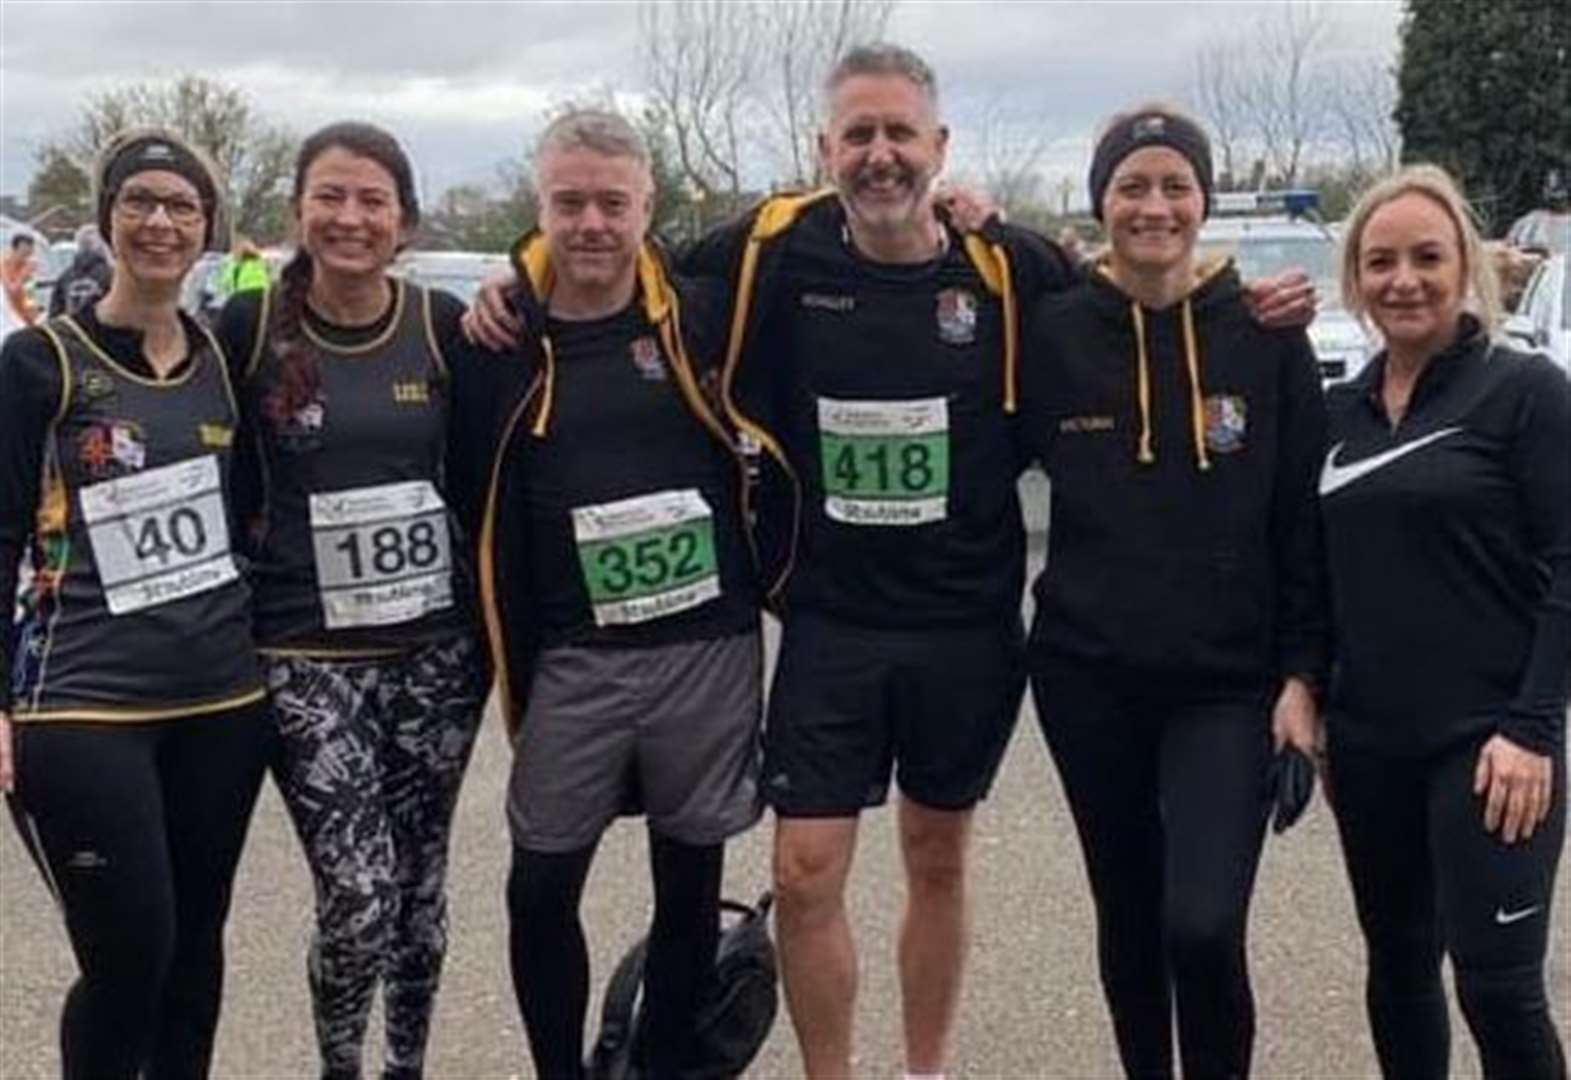 Running: Doubl-Lee good results for Three Counties